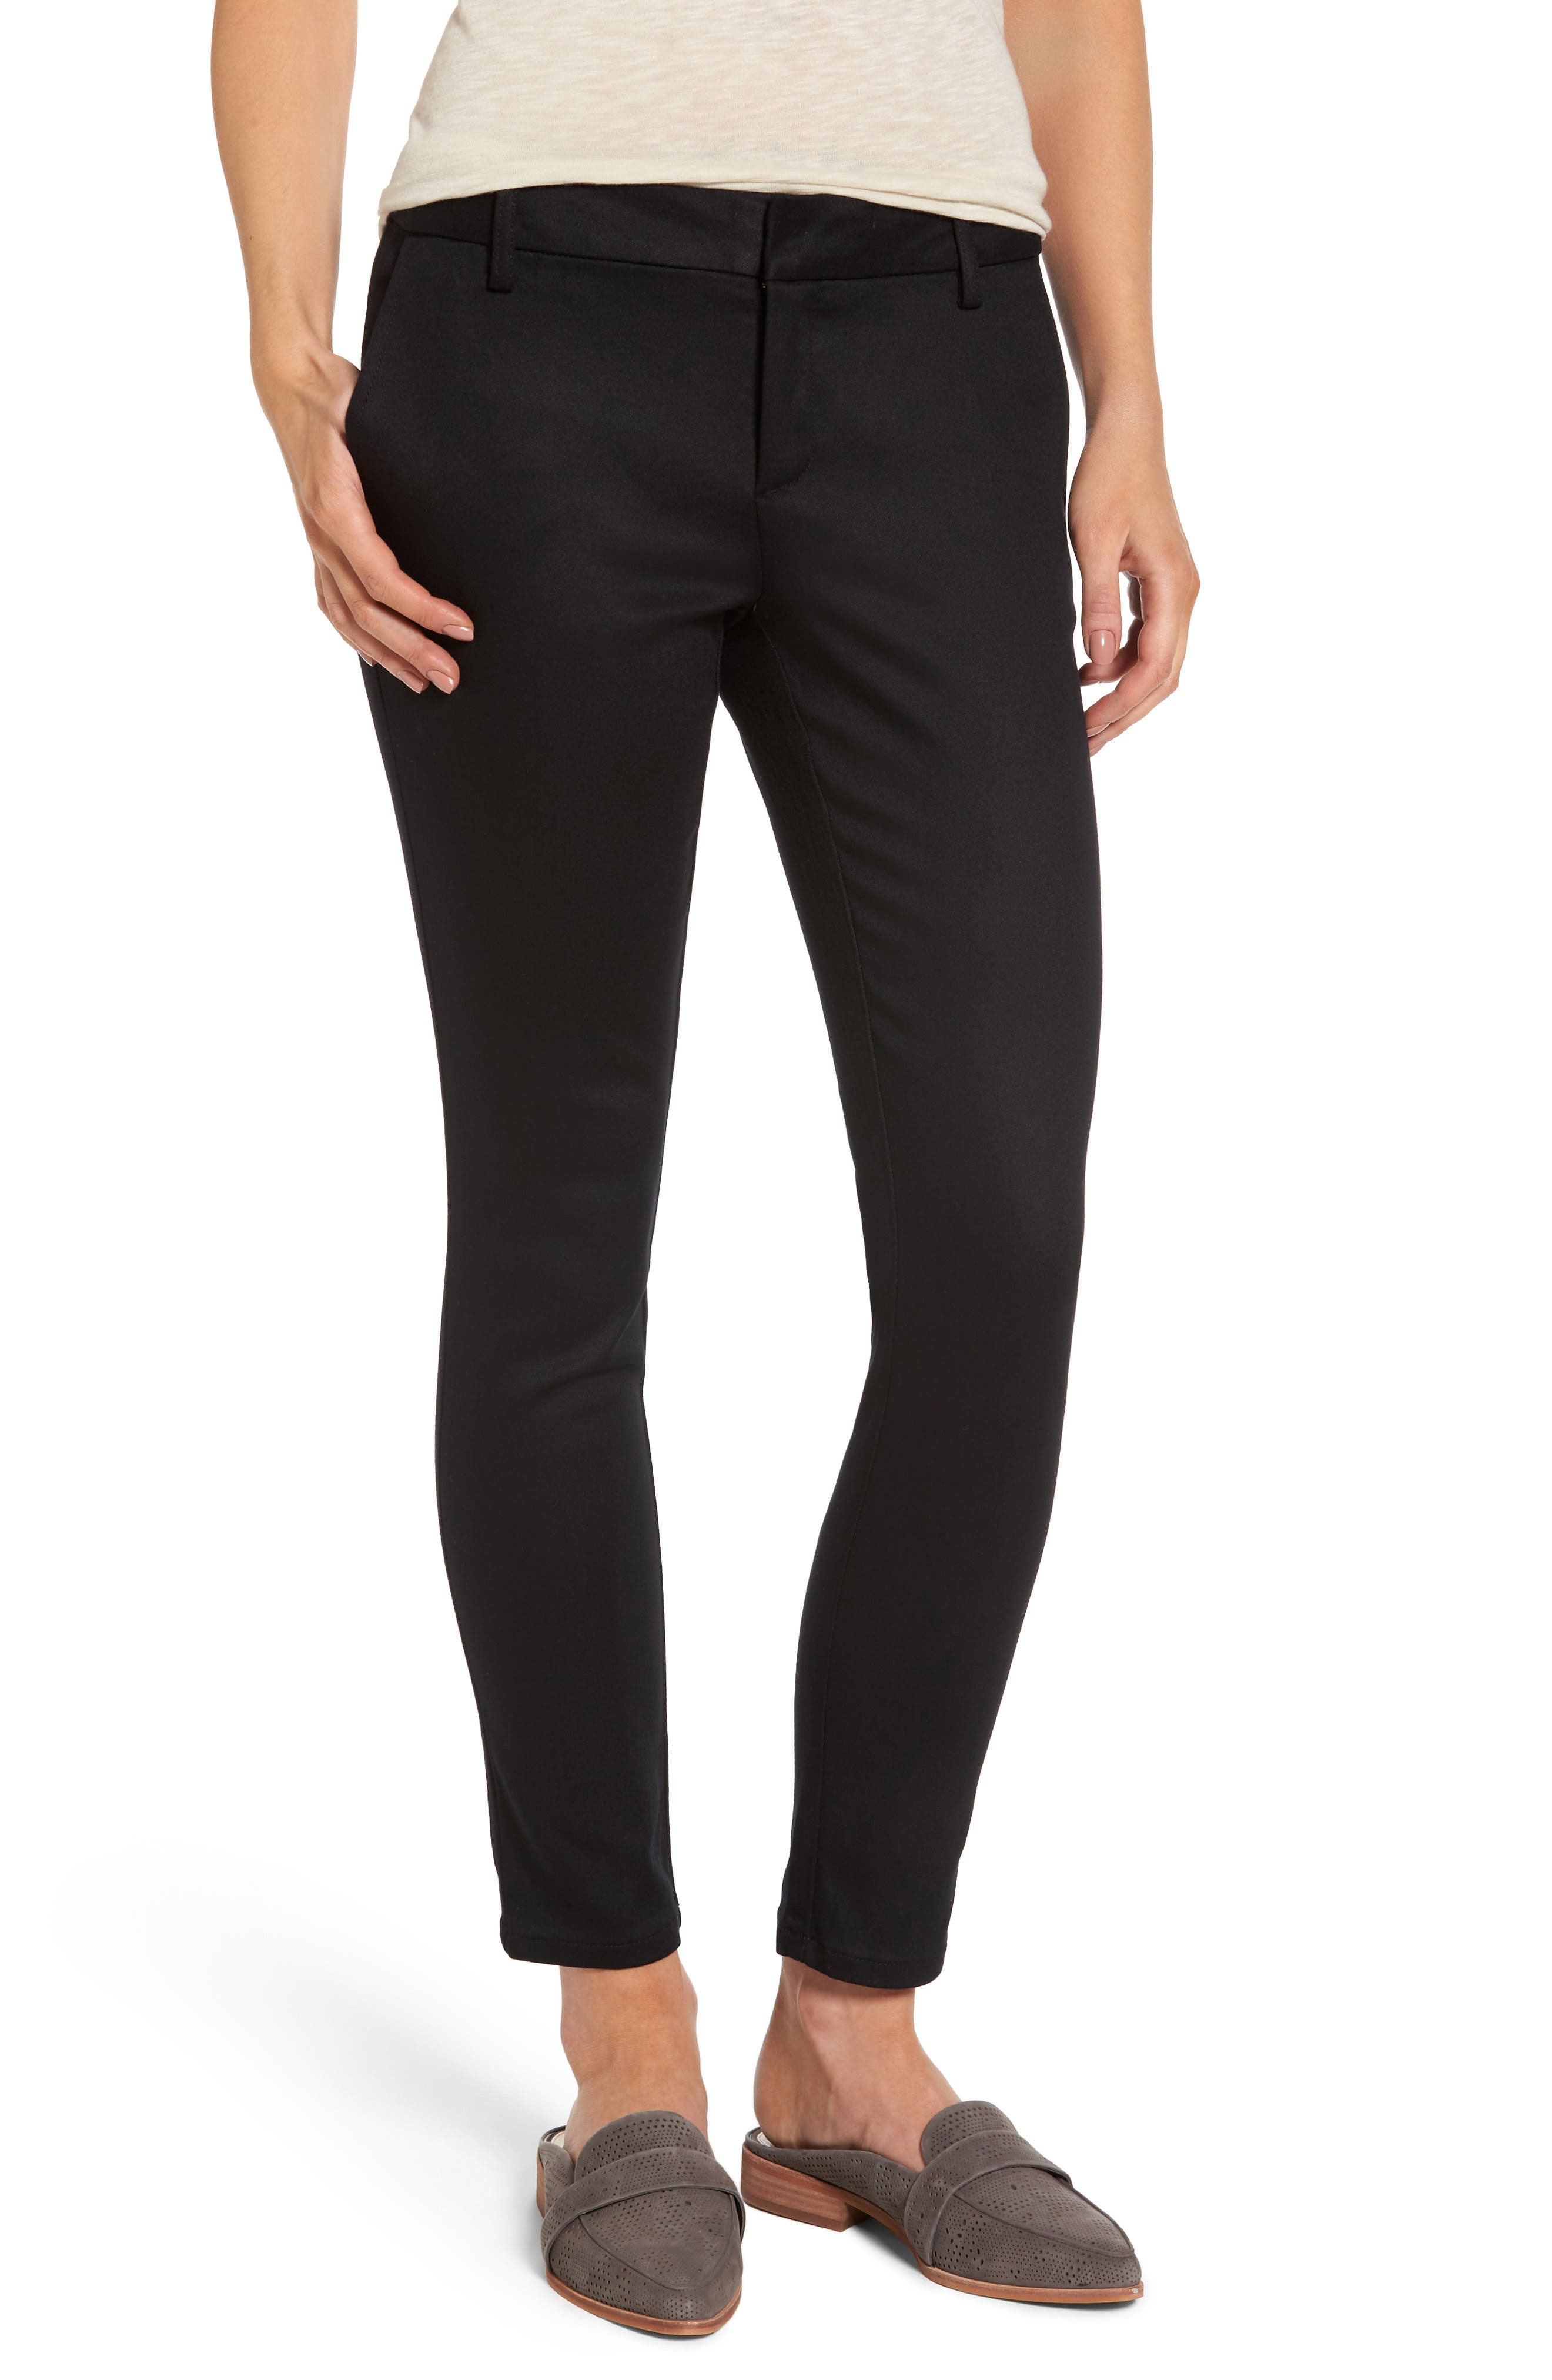 Alternate Image 1 Selected - KUT from the Kloth Emilia Skinny Pants